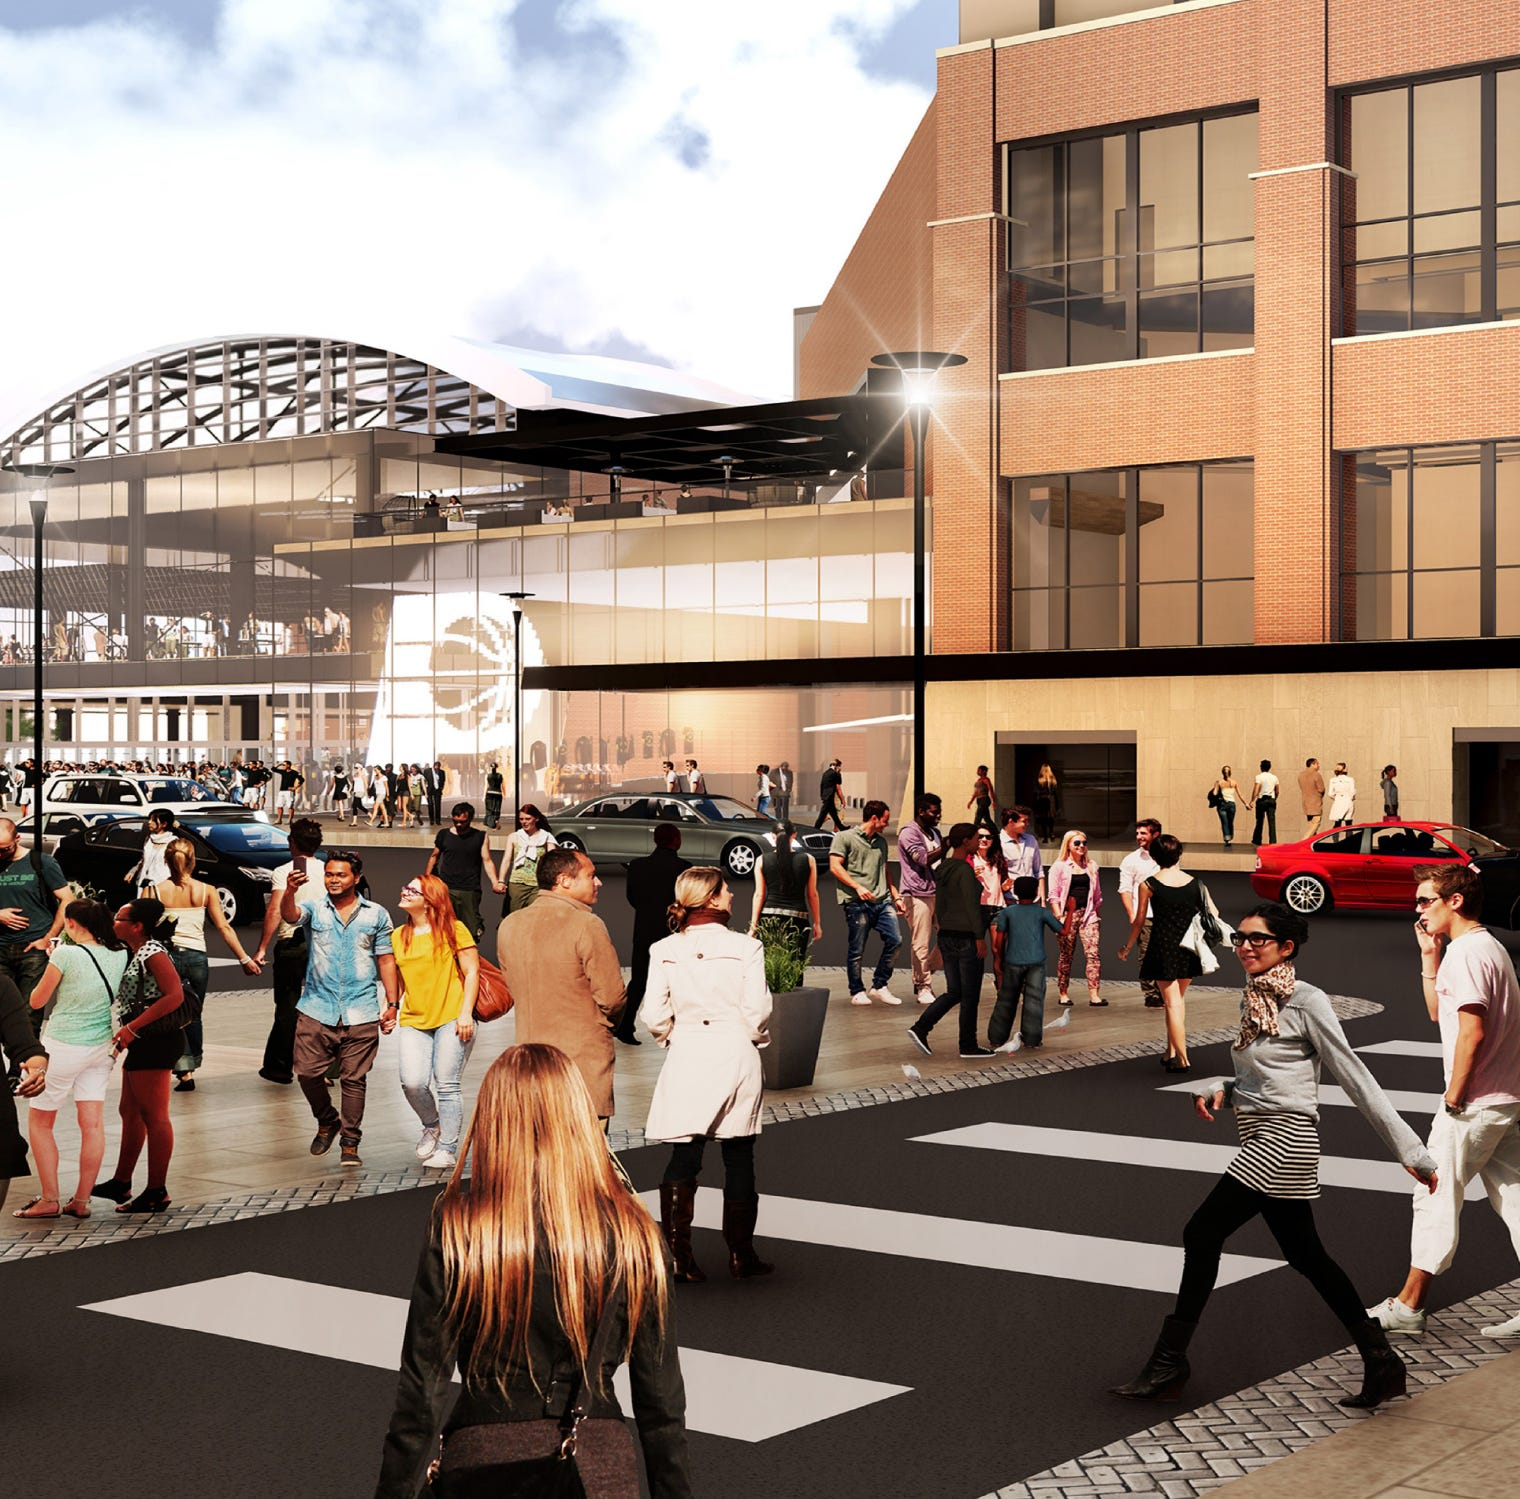 Deal to keep Pacers in town rises to roughly $800M to expand, operate Bankers Life Fieldhouse